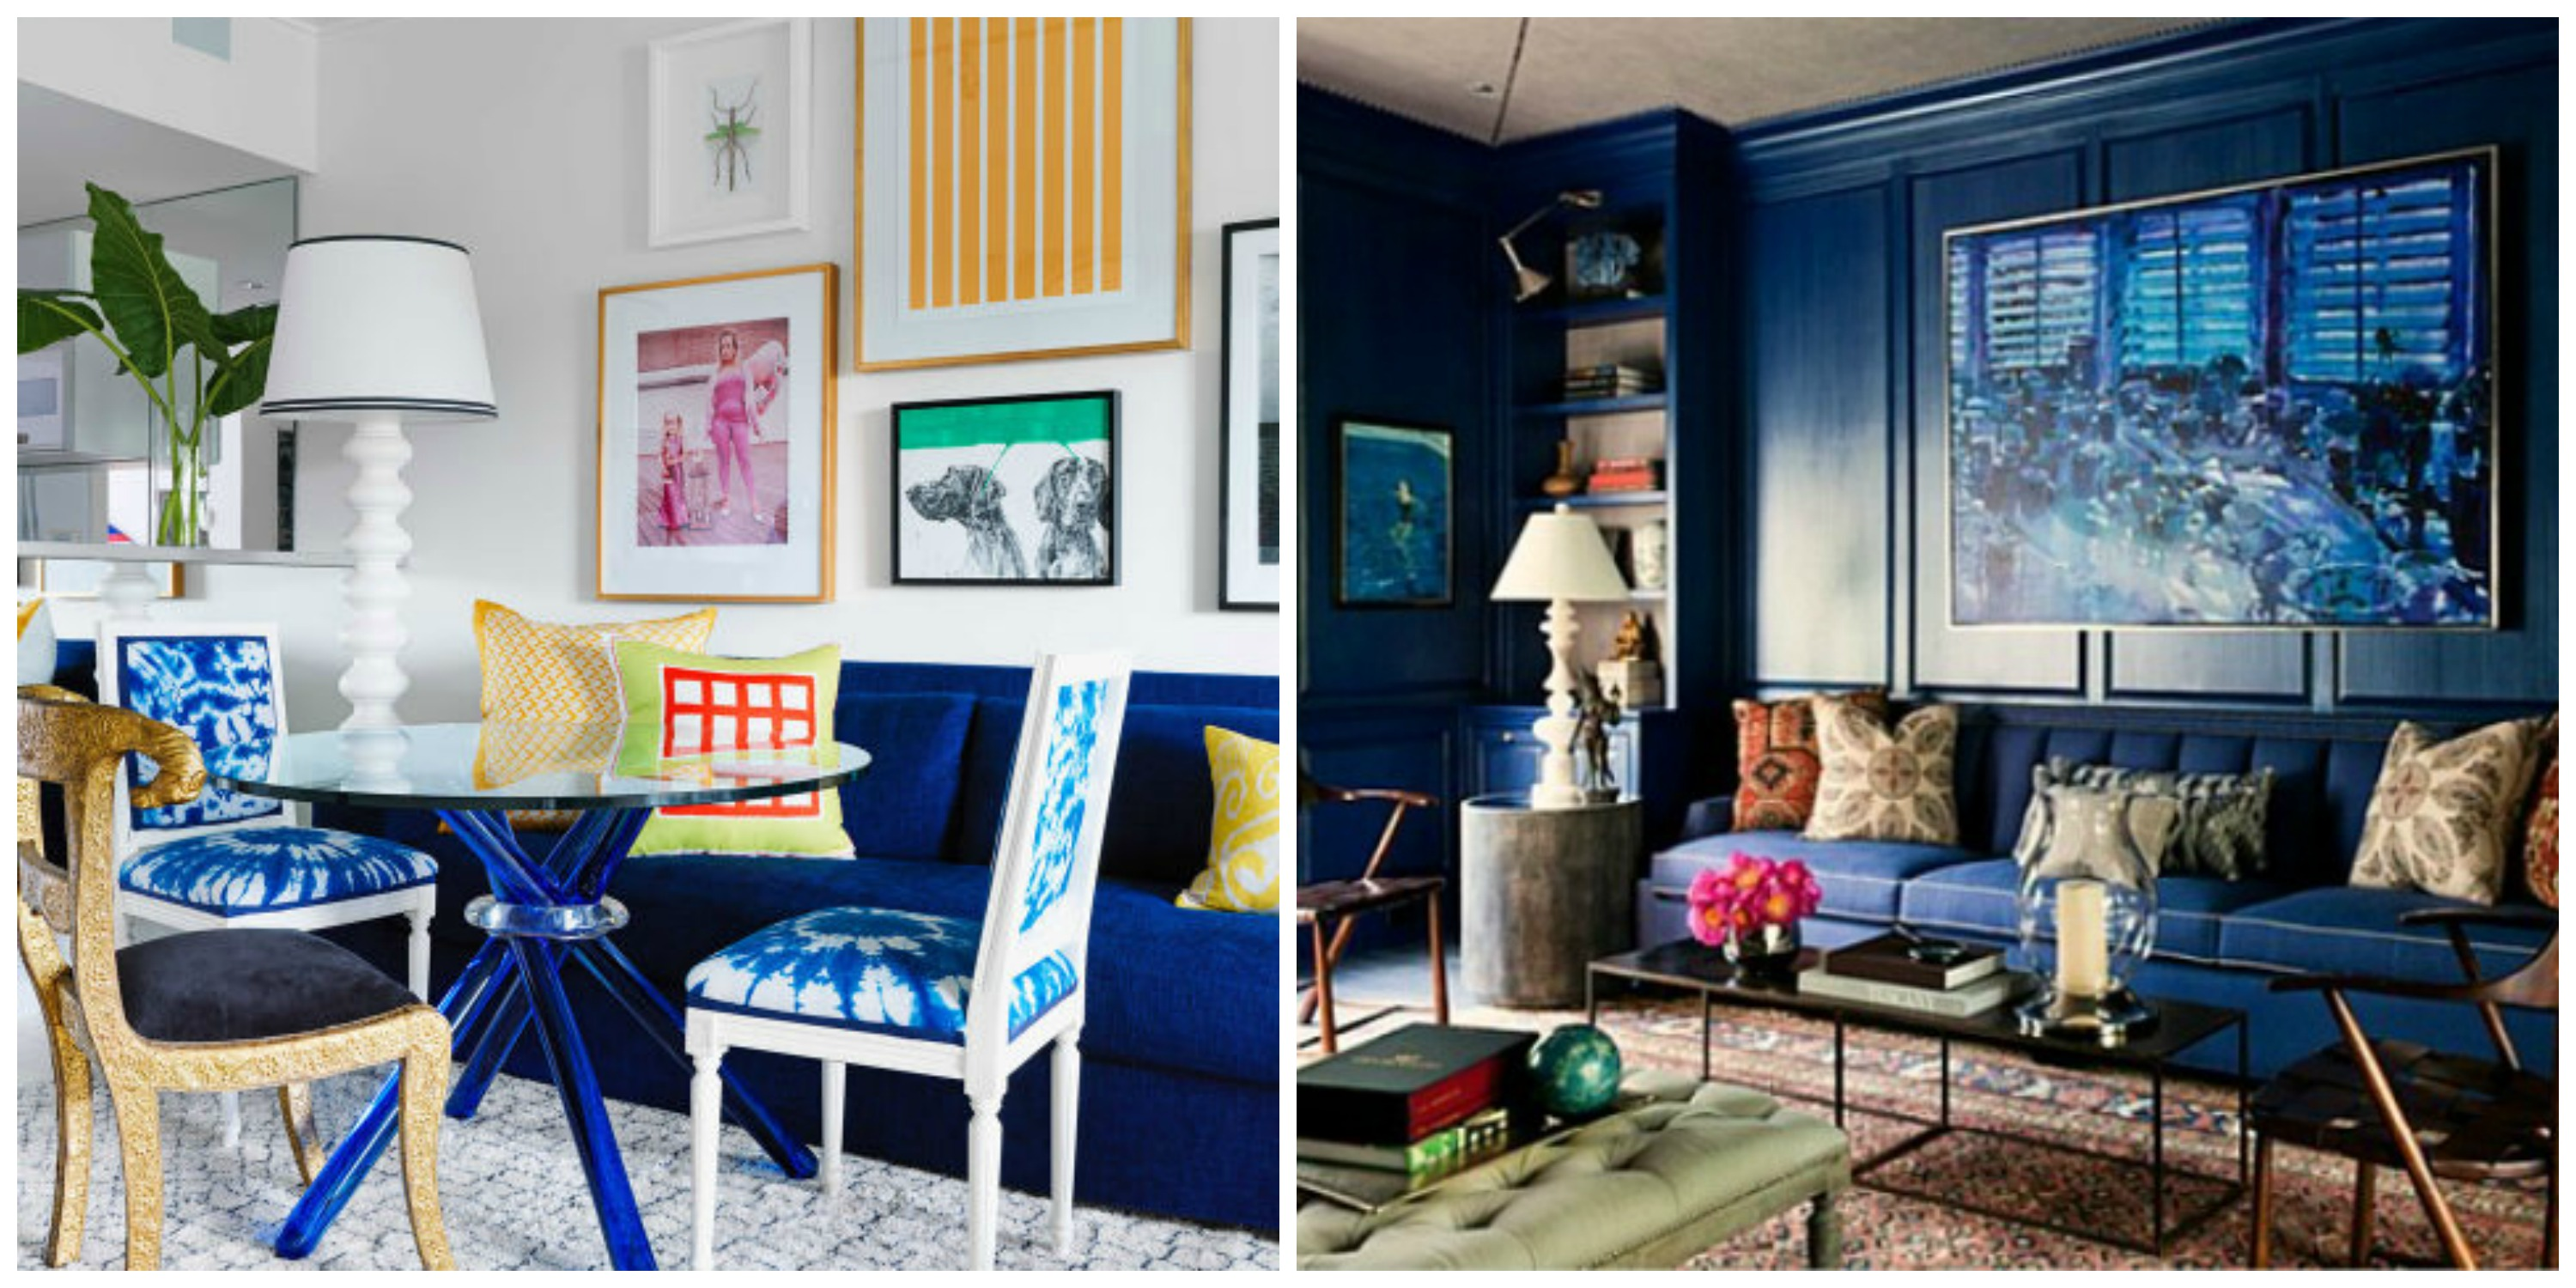 Interior Design Trends It's A Haute House In Here Interior Design Trends For 2015